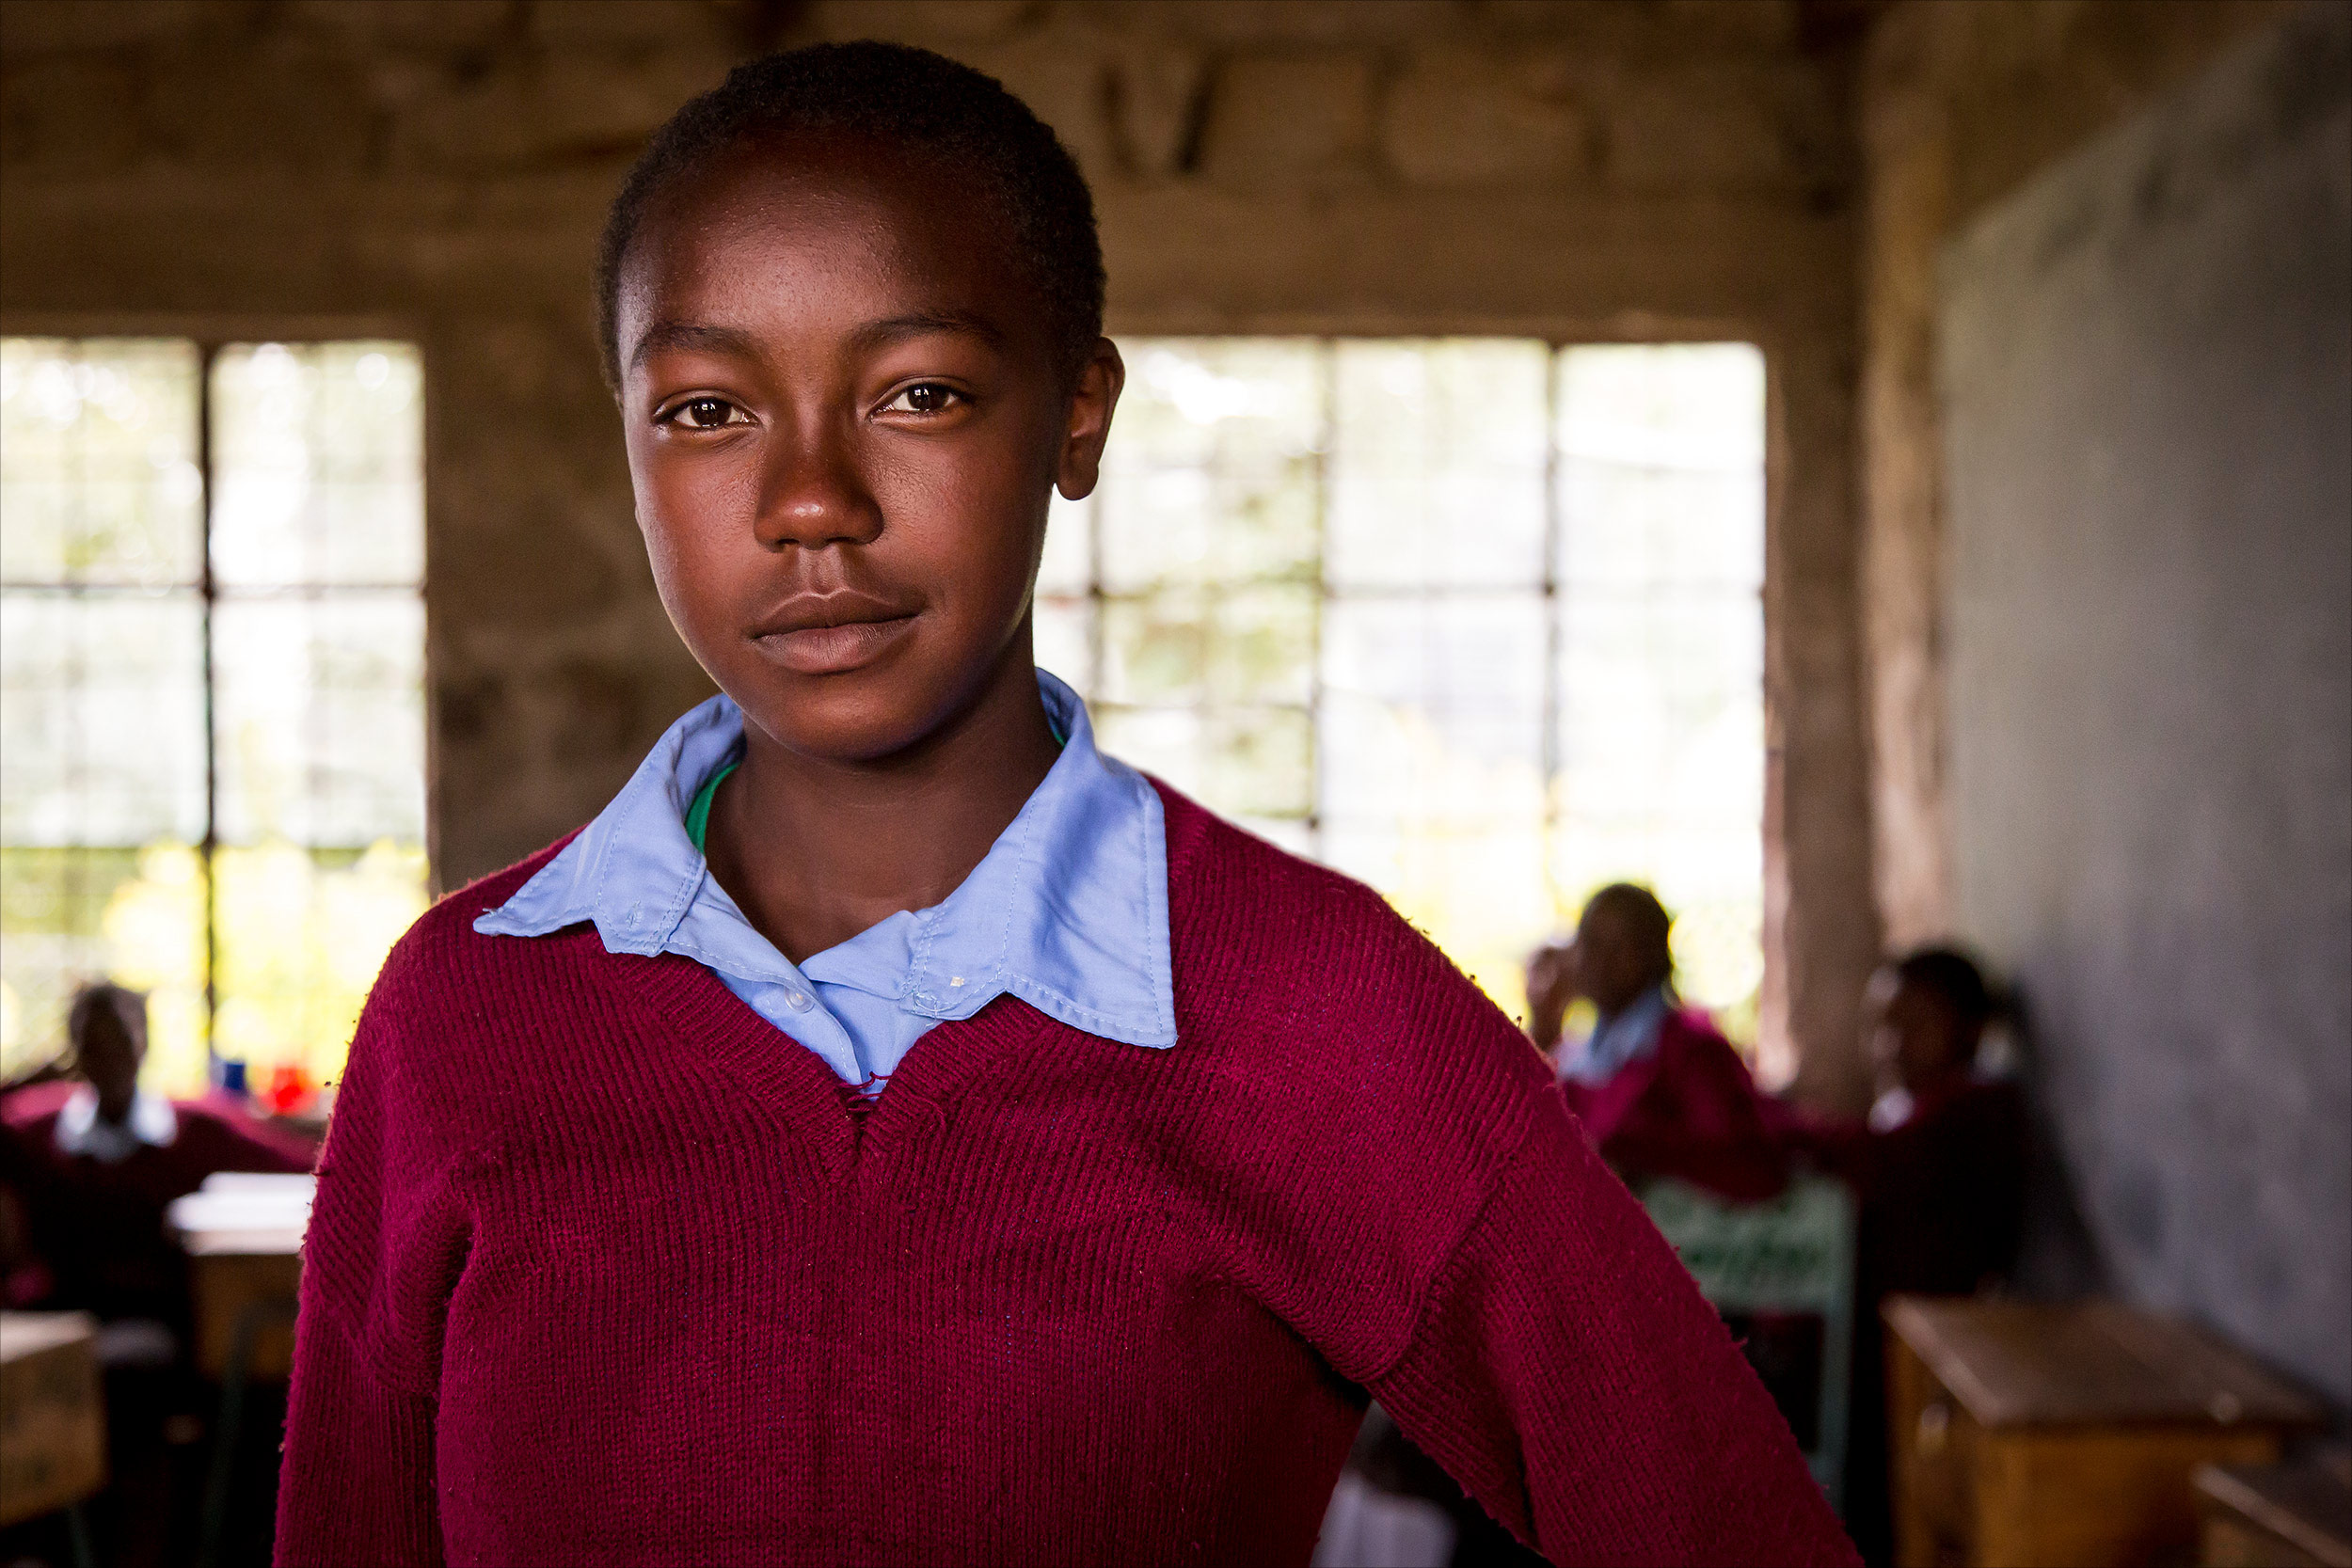 Secondary school student, Kenya